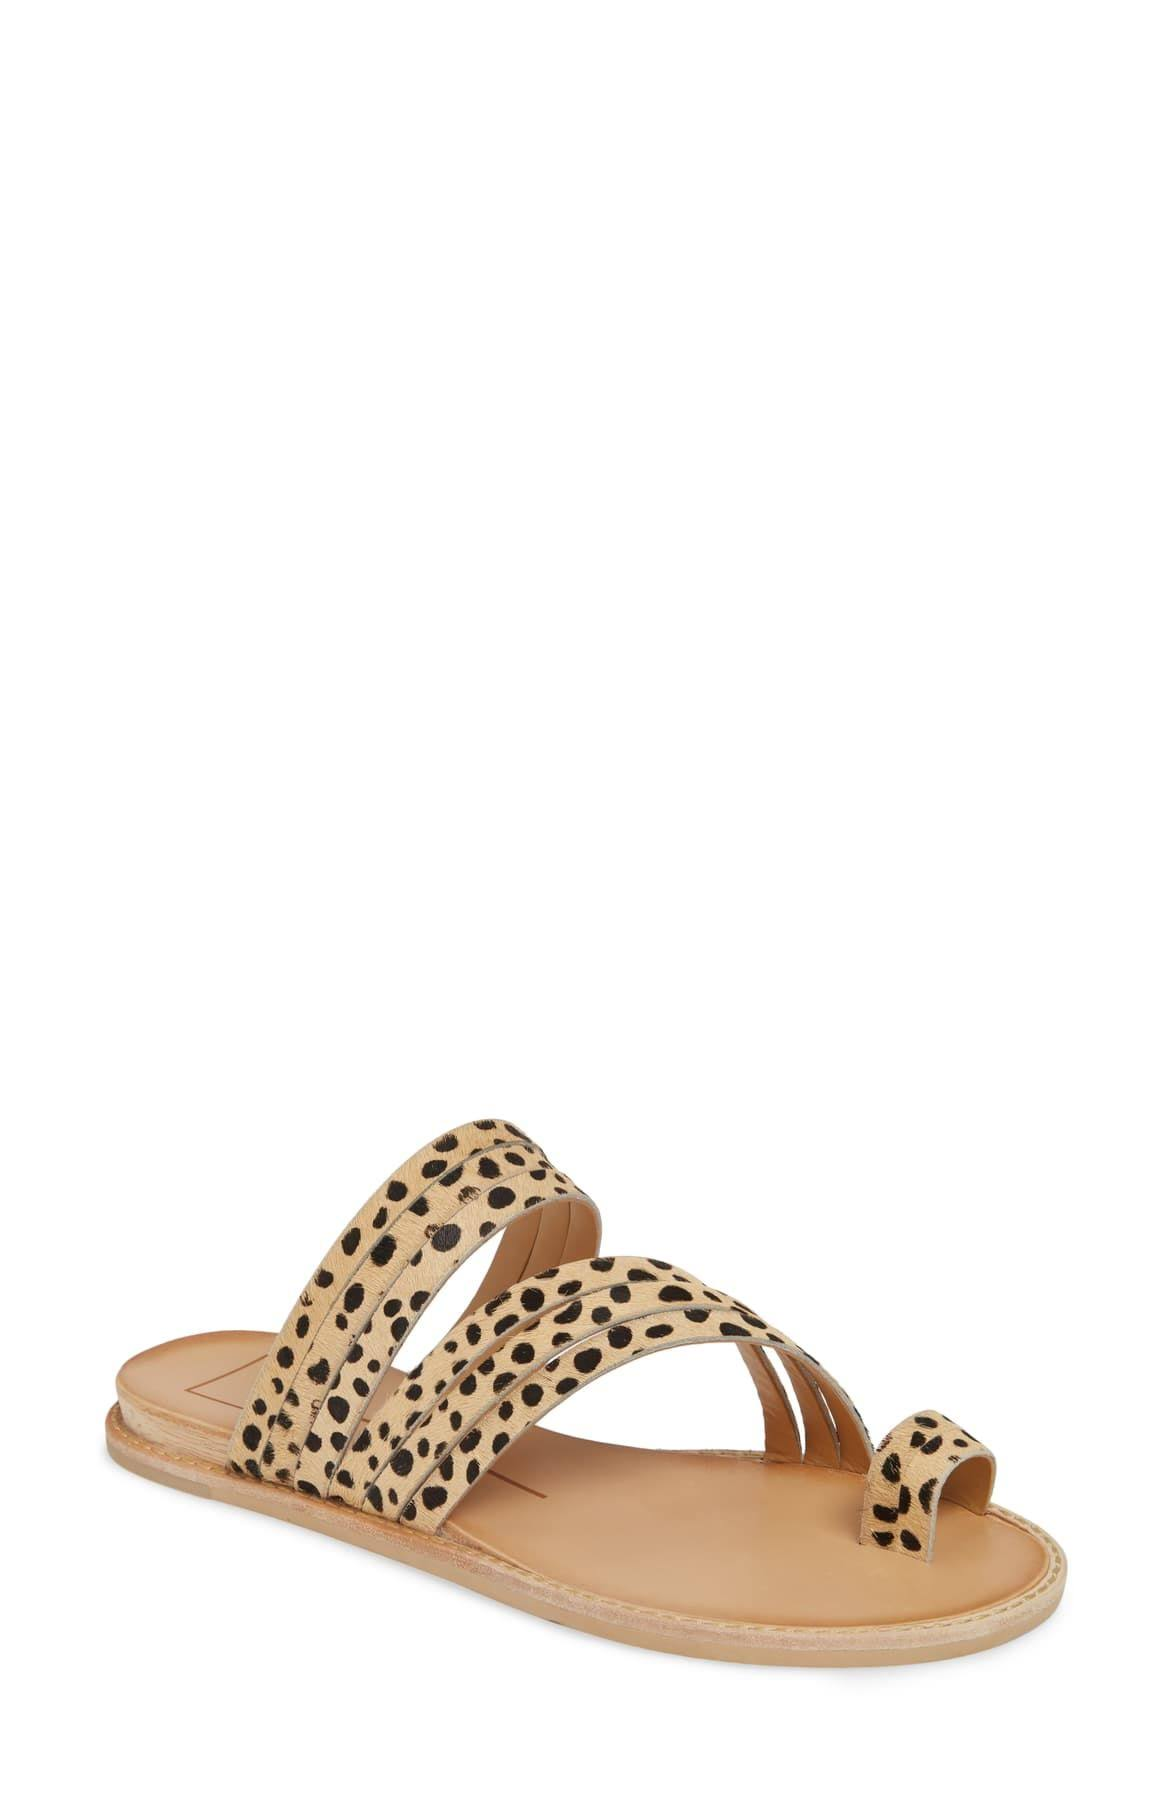 Dolce Vita Nelly Sandals- 10 / Leopard